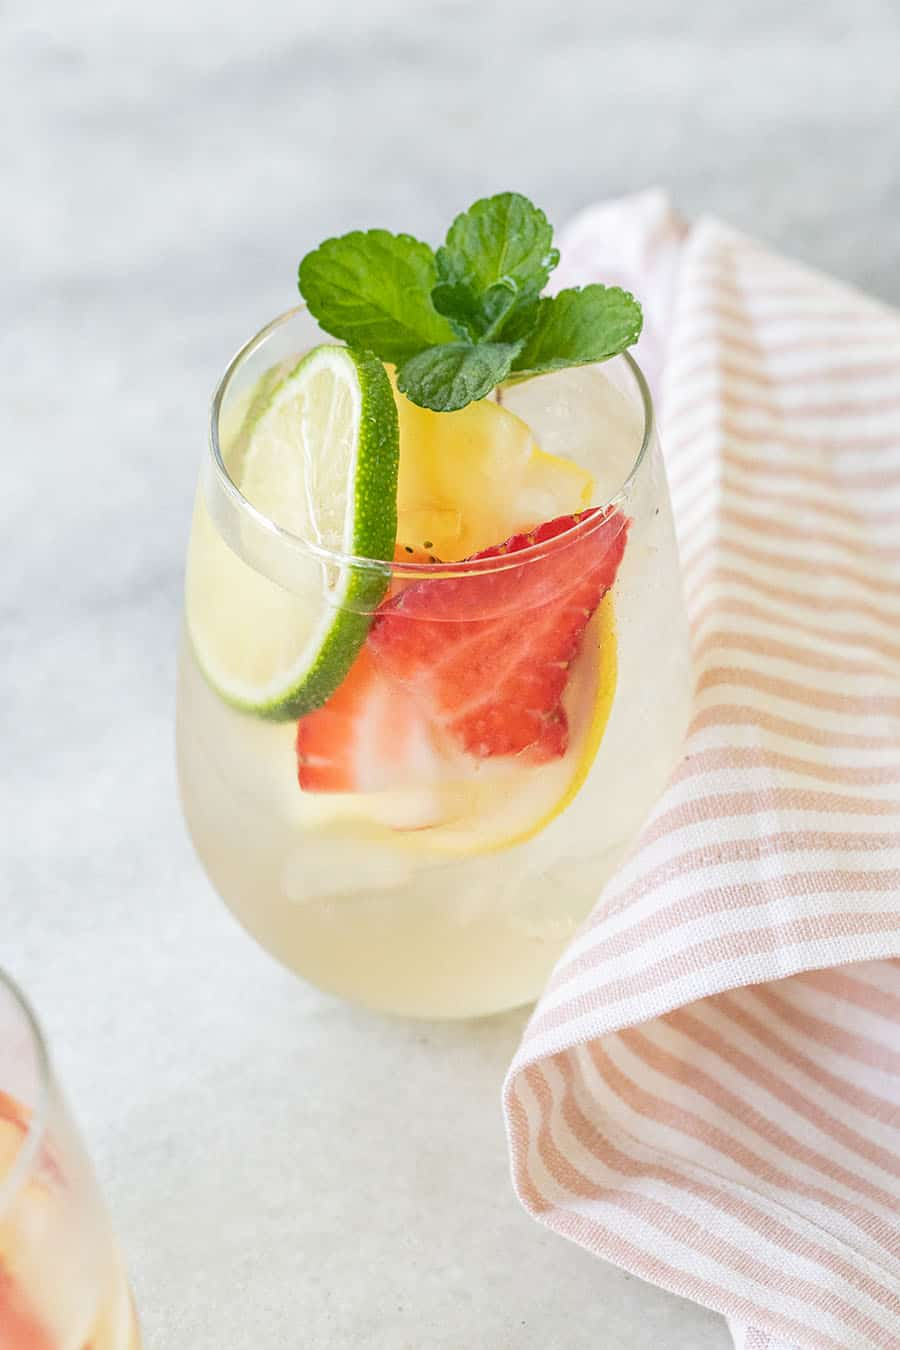 Sangria with lime, strawberry and lemon and a fresh sprig of mint.